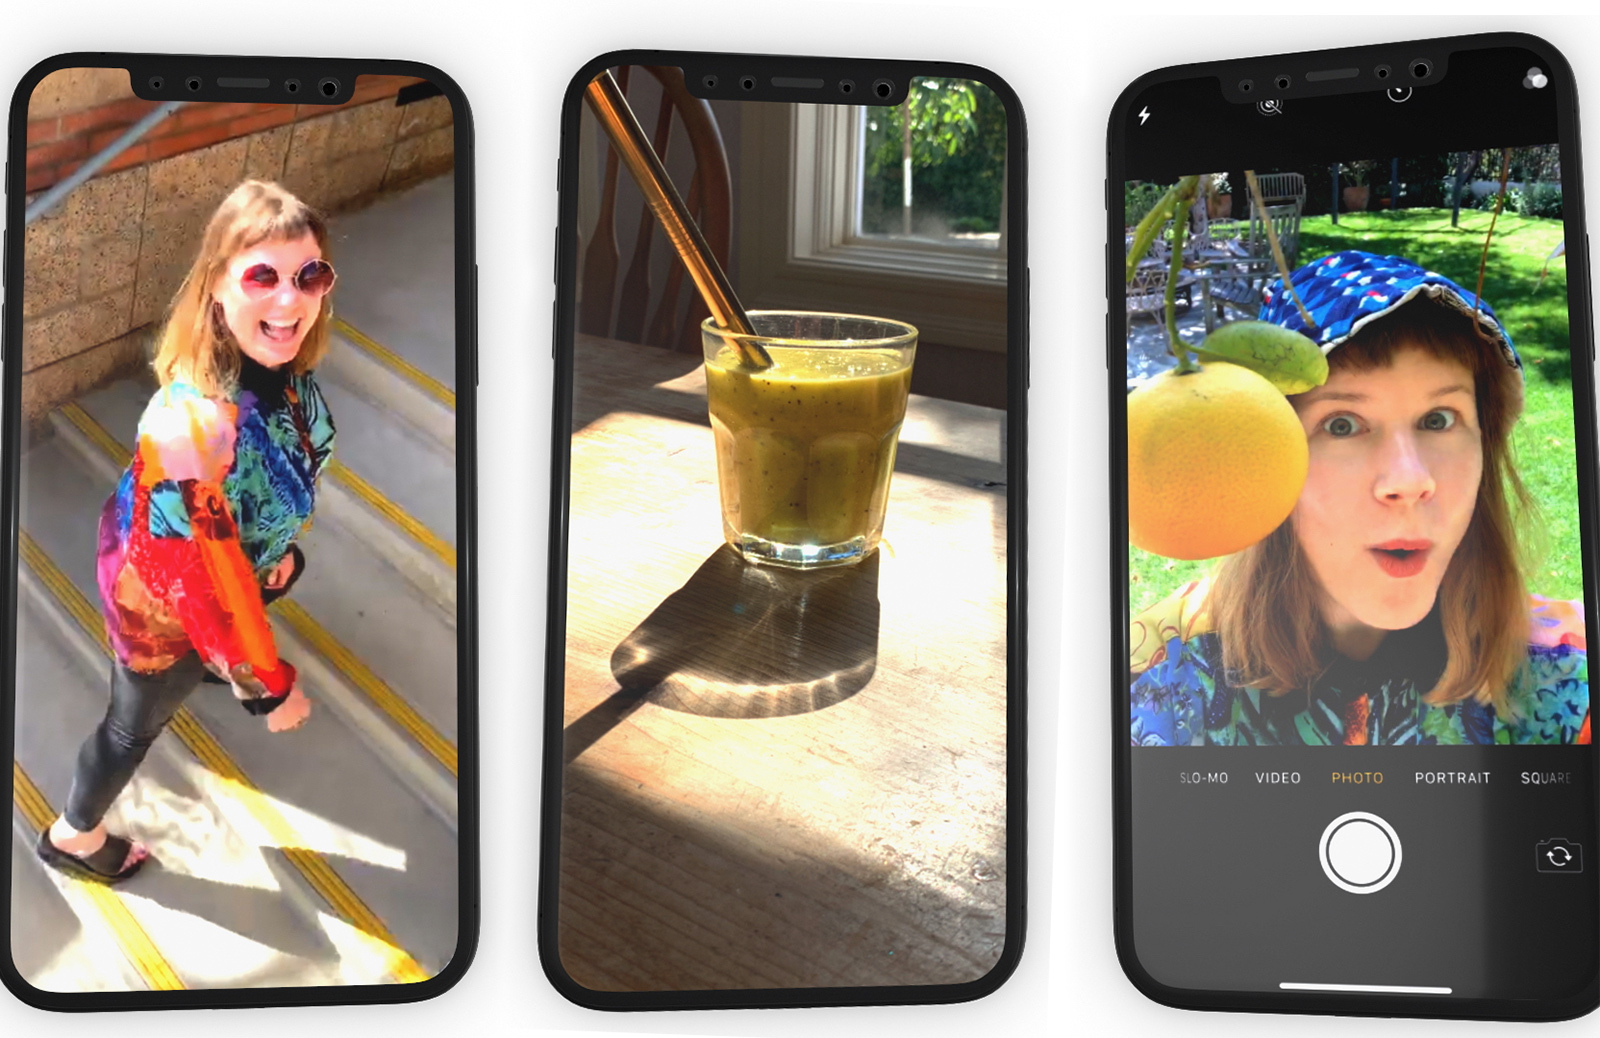 three iphones show images of a person looking up, a glass of coffee and a person with a tree